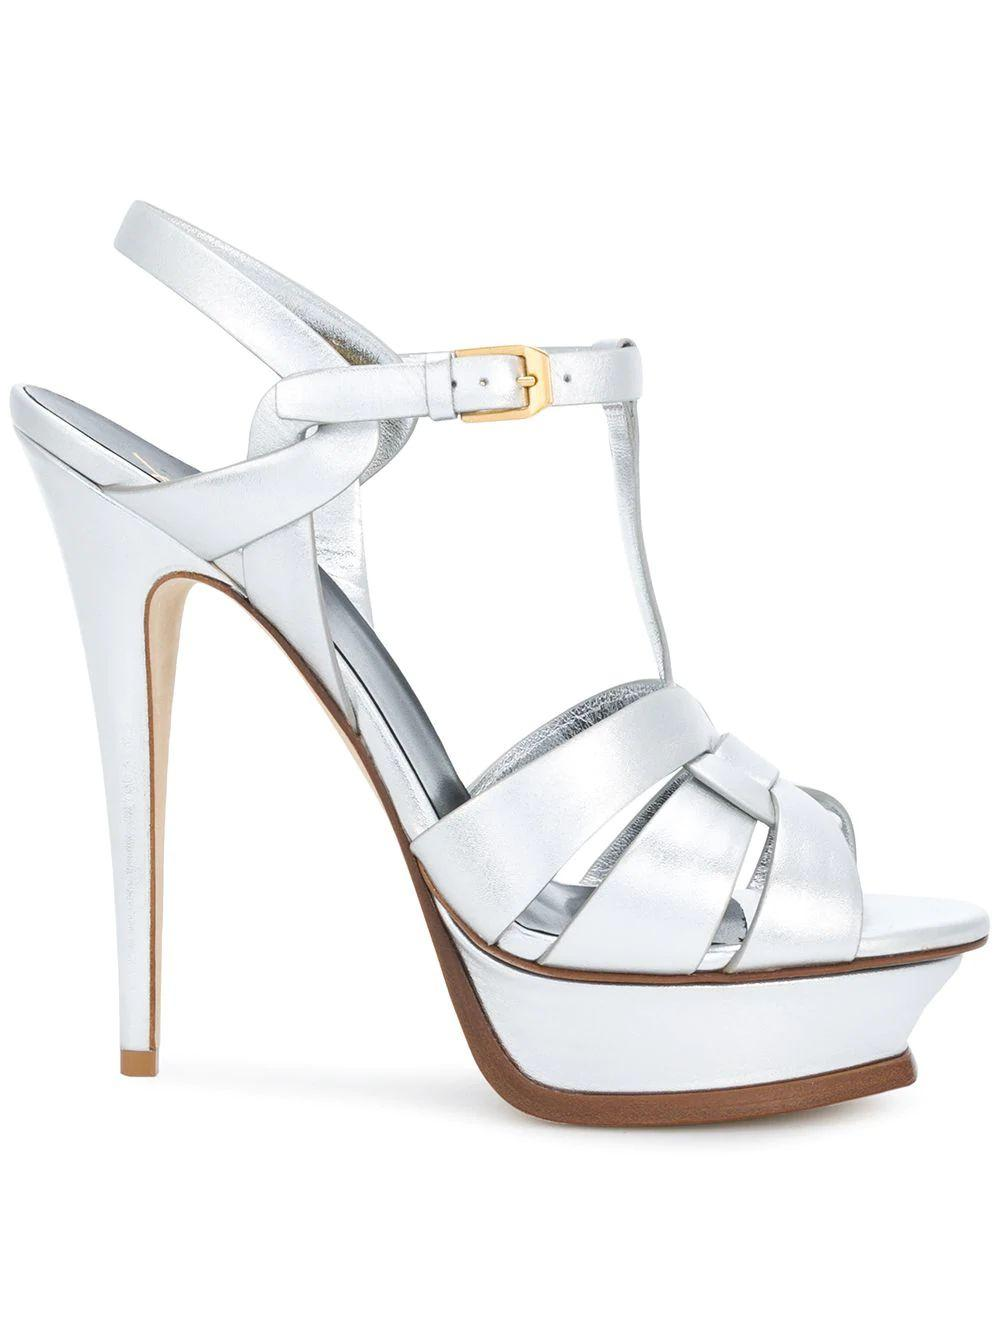 Tribute 105mm Leather Sandal